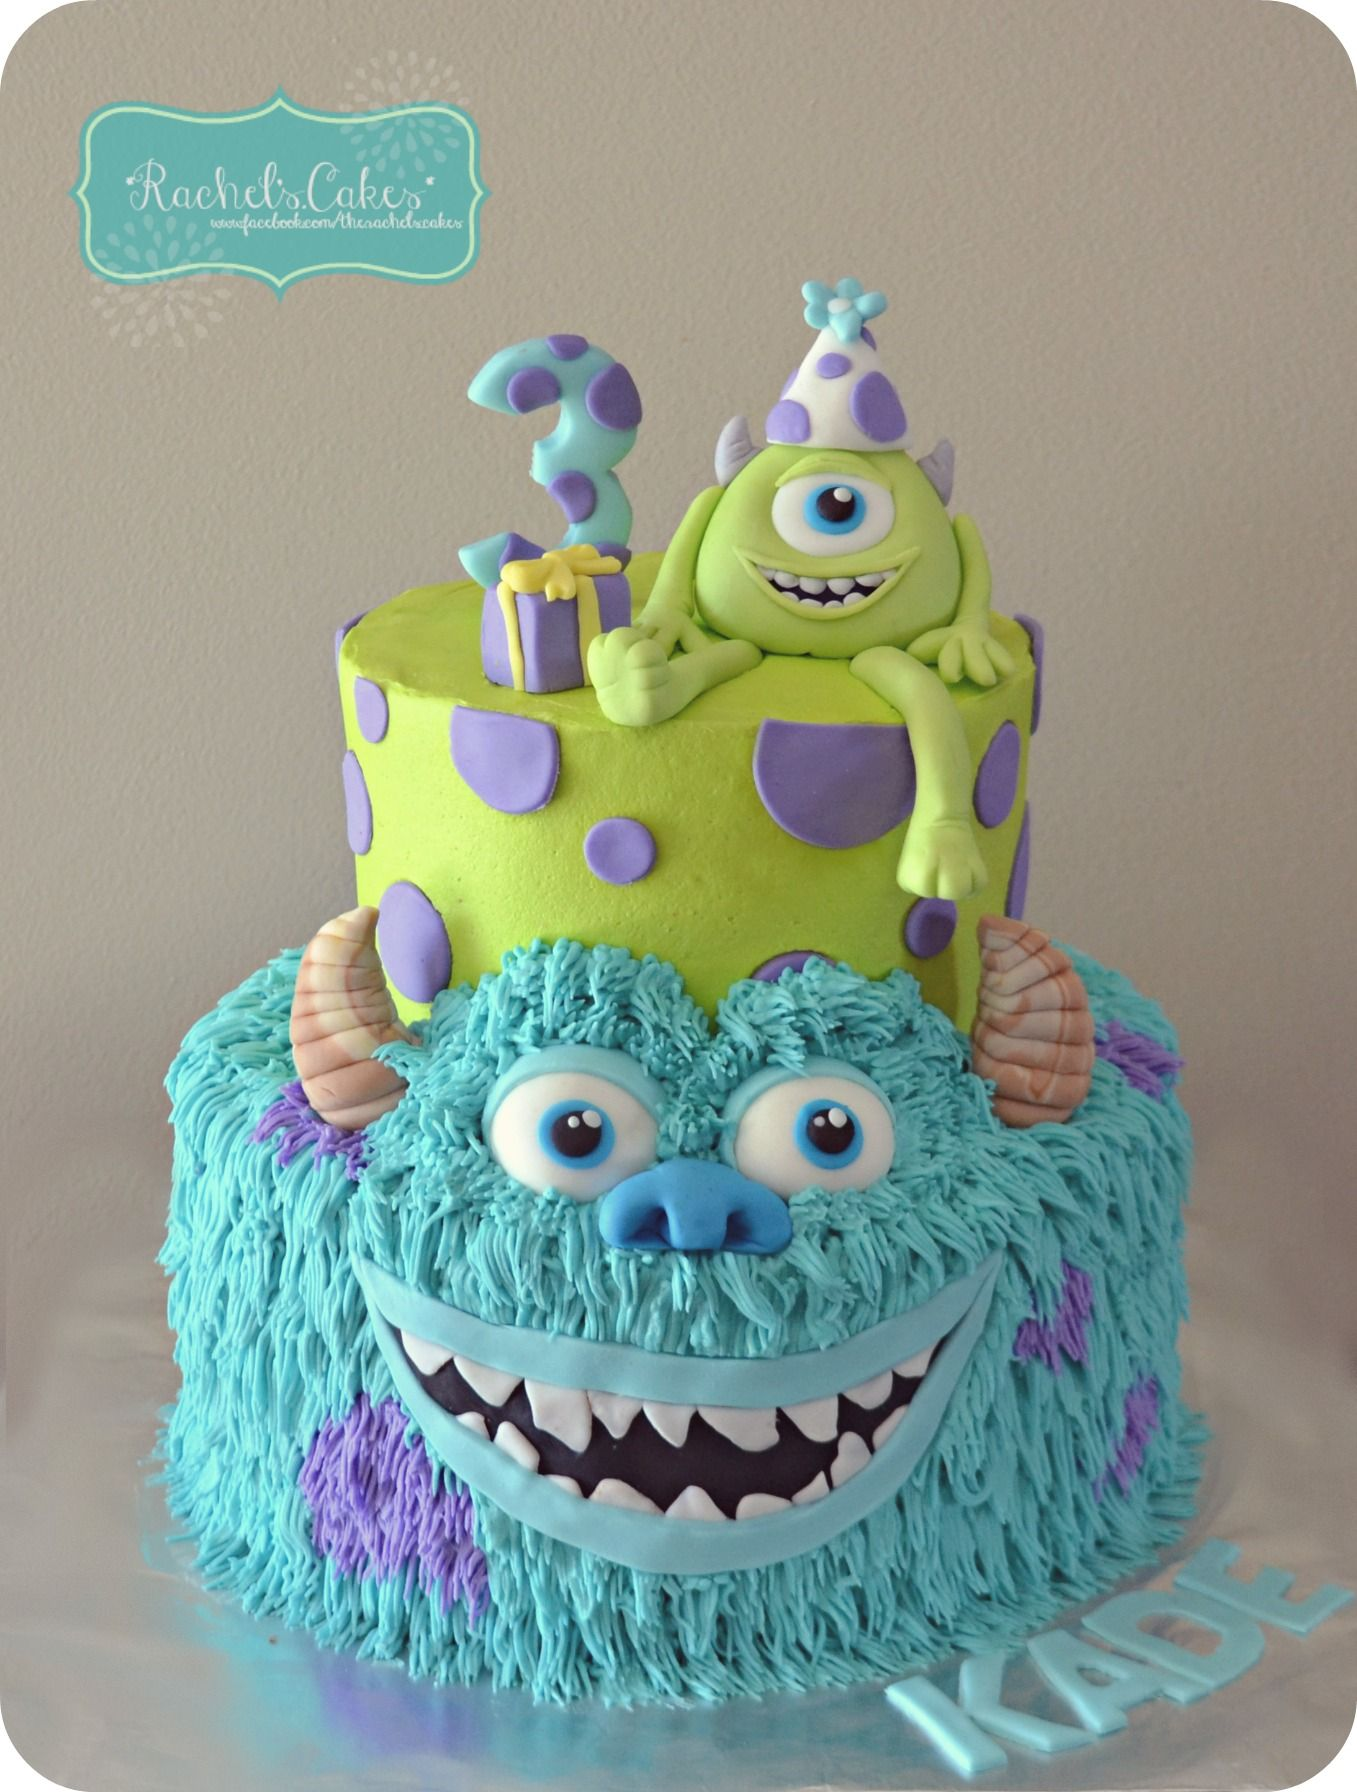 Pleasant Monsters Inc Cake Inspired By Another Pinterest Pin With Funny Birthday Cards Online Hendilapandamsfinfo